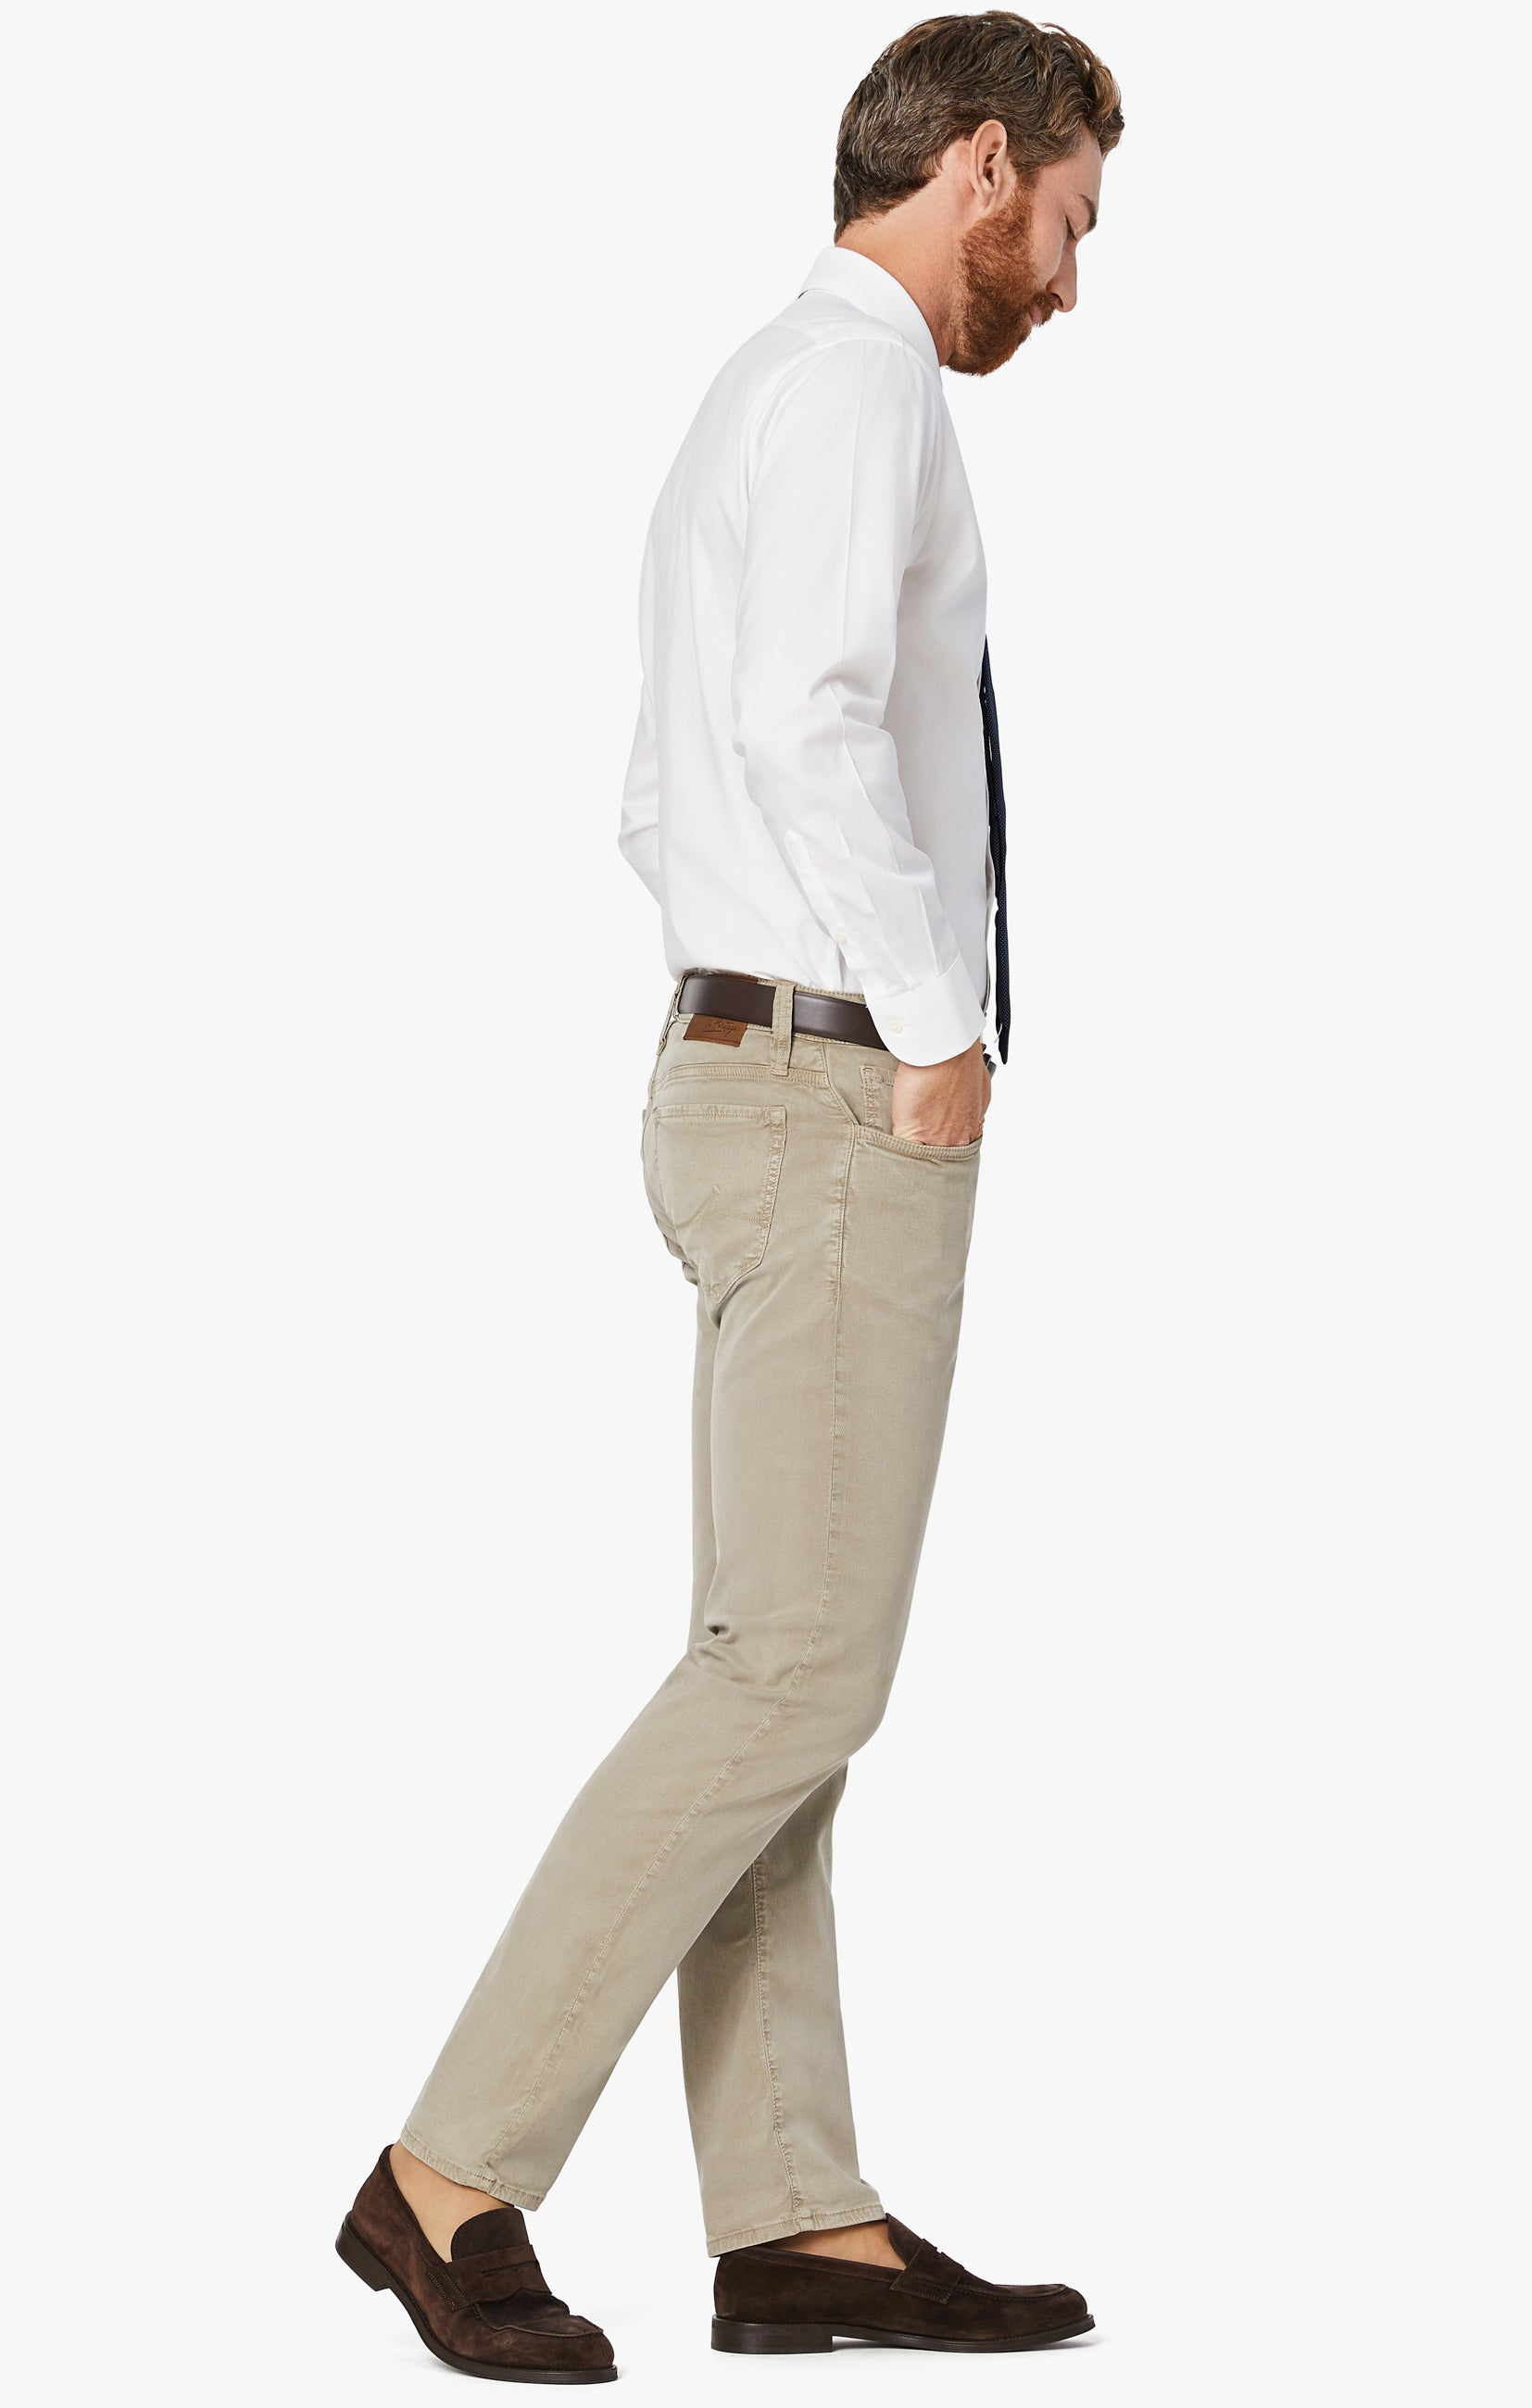 Courage Straight Leg Pants in Mushroom Soft Touch Image 5